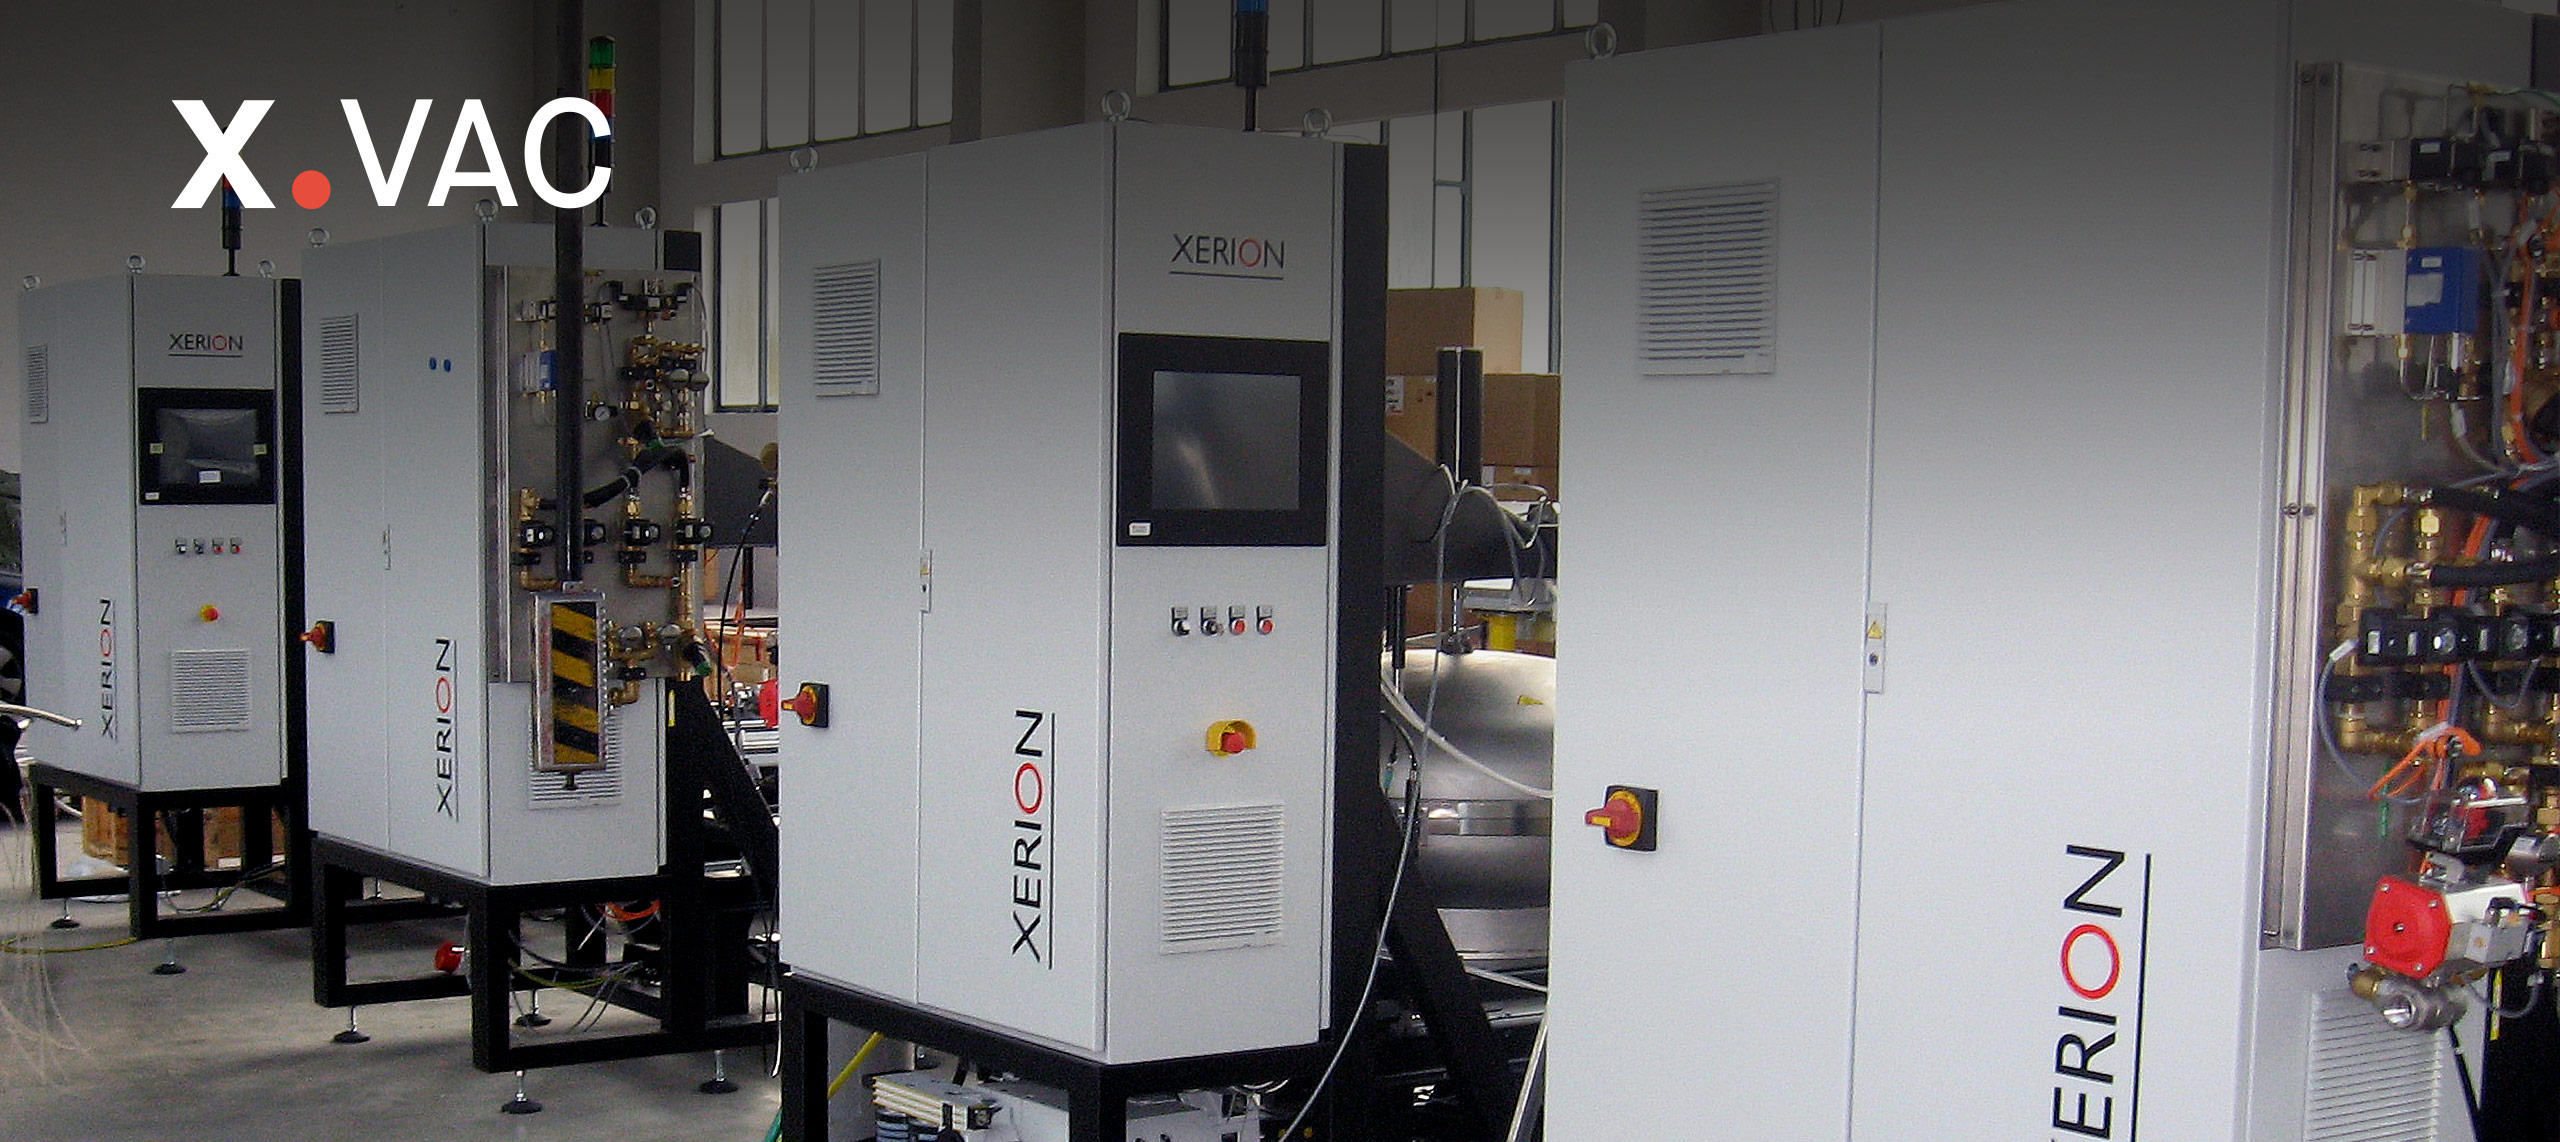 XERION Furnaces X.VAC 1